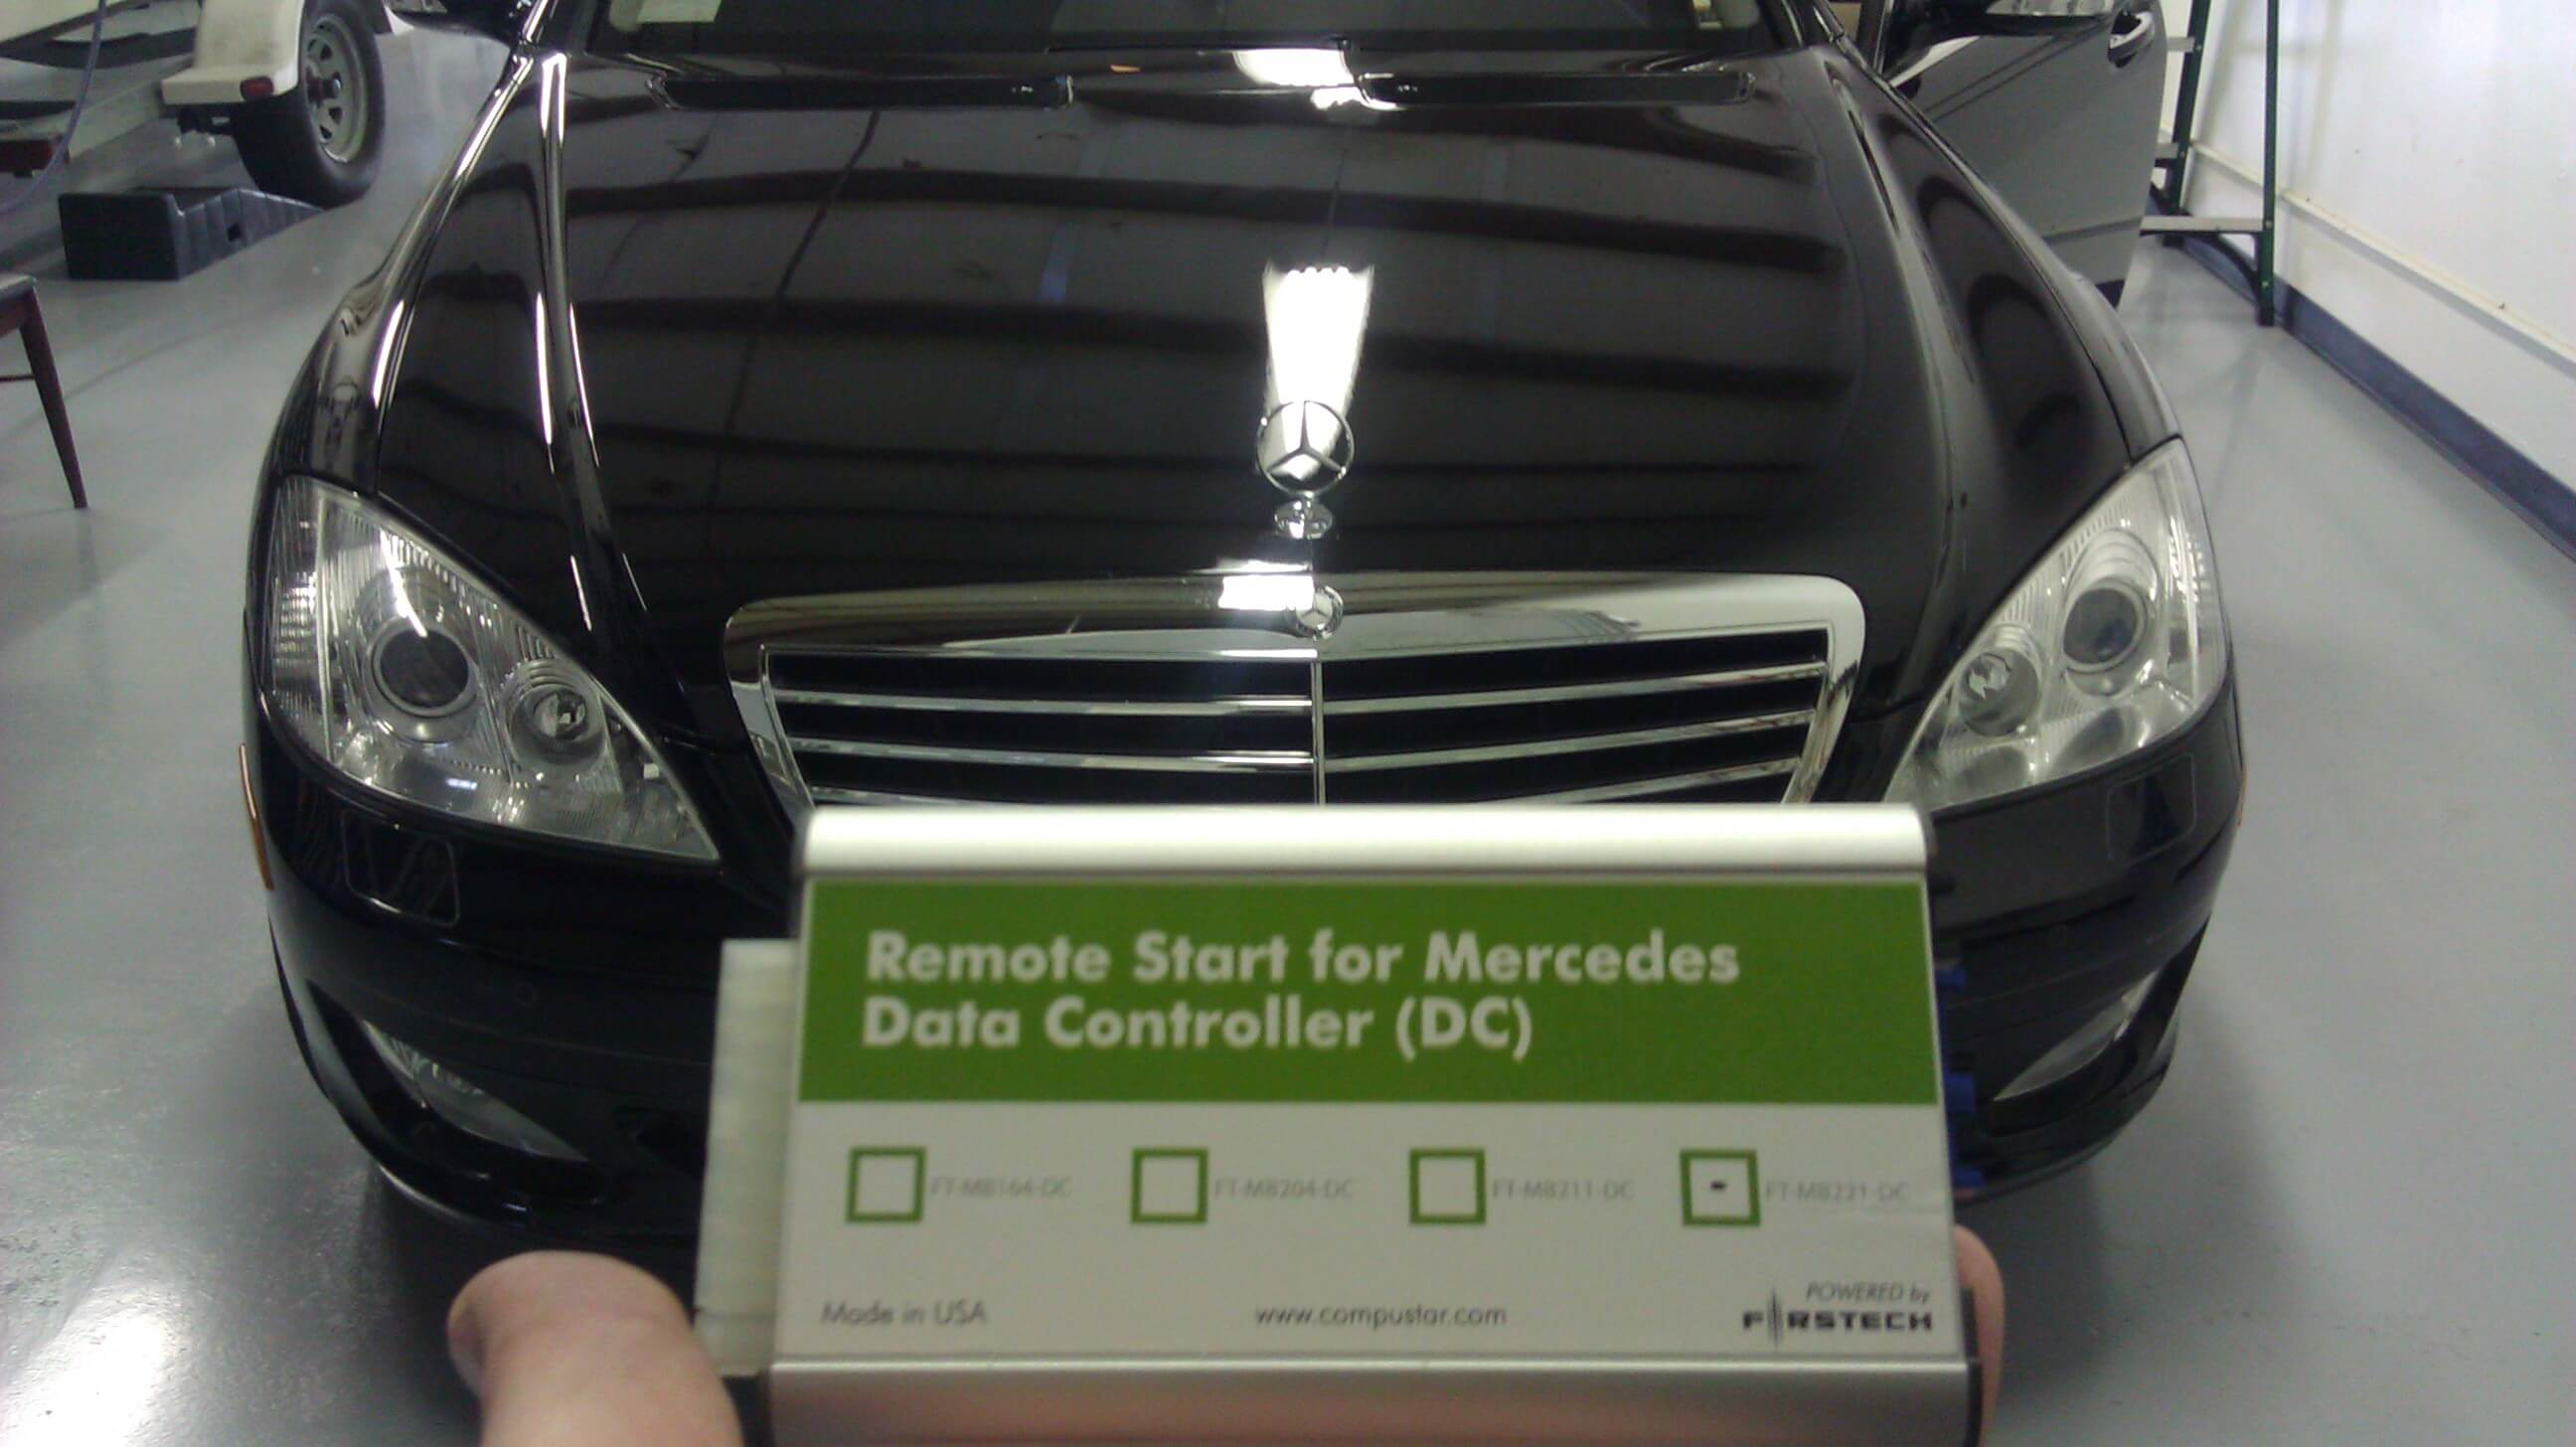 zqpv cars mercedes avantgarde c en used start klasse cdi second undefined vehicle hand benz be remote stop